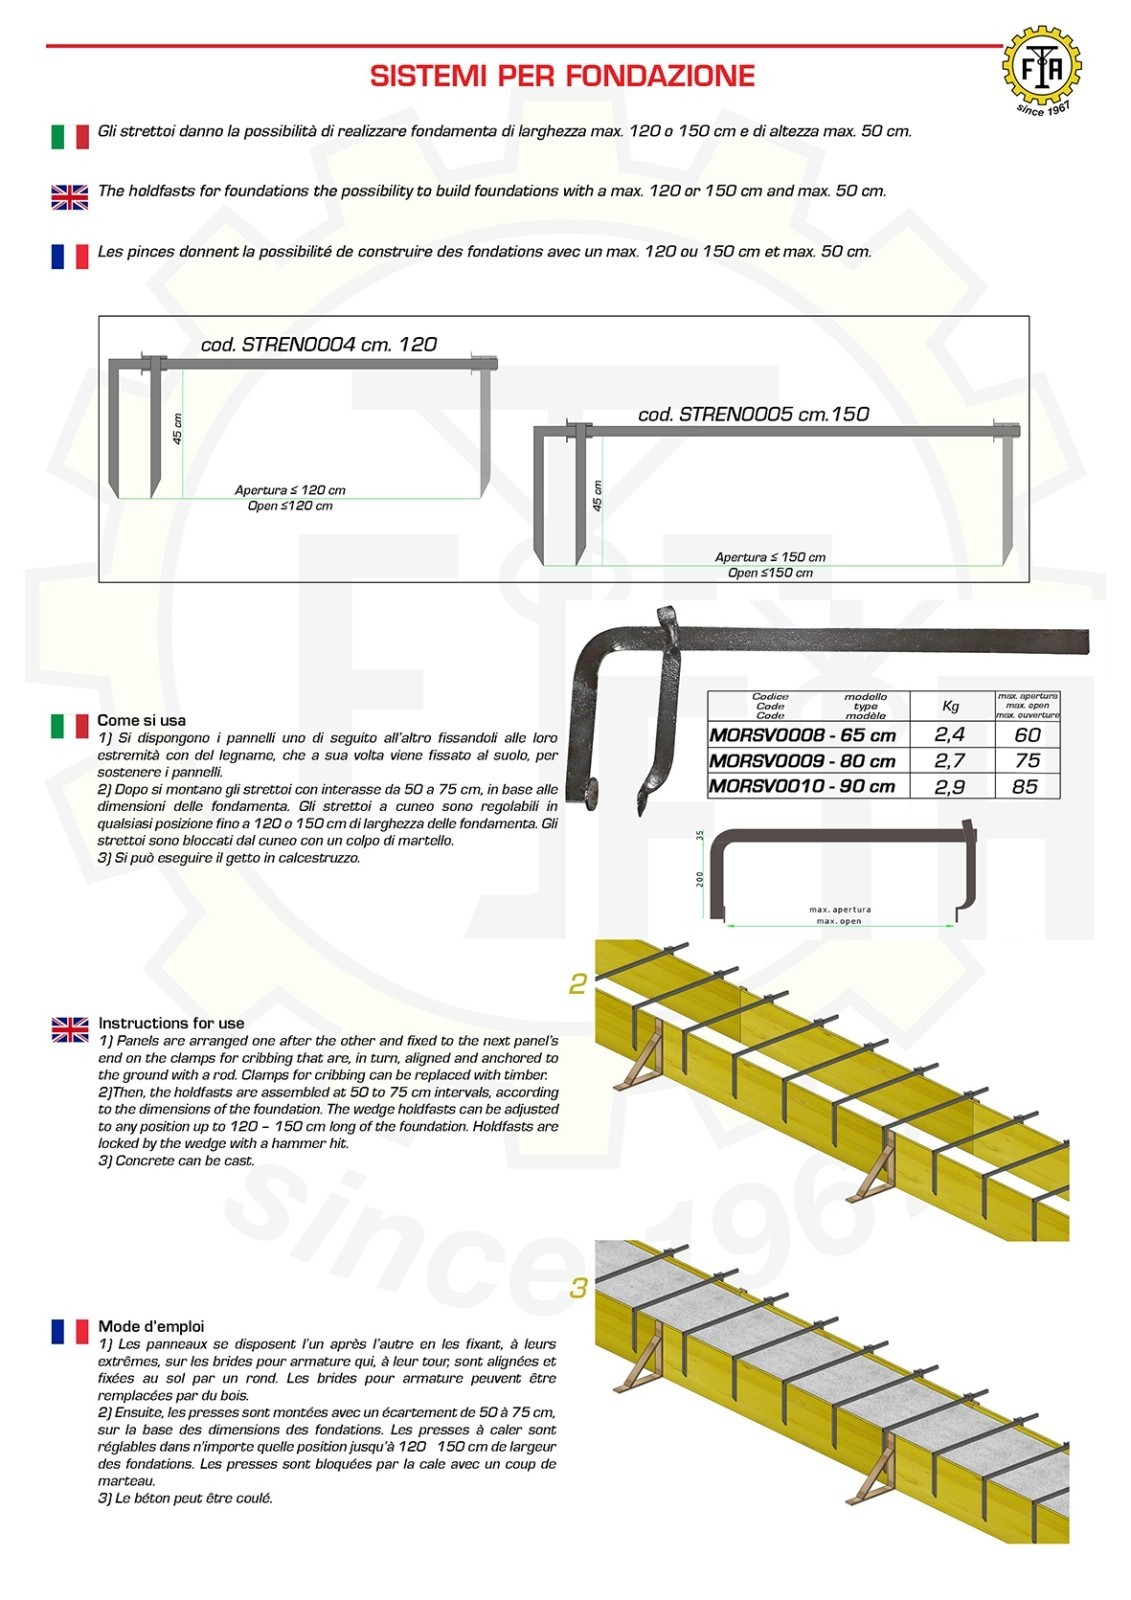 New brochure for foundation systems and hammer clamps